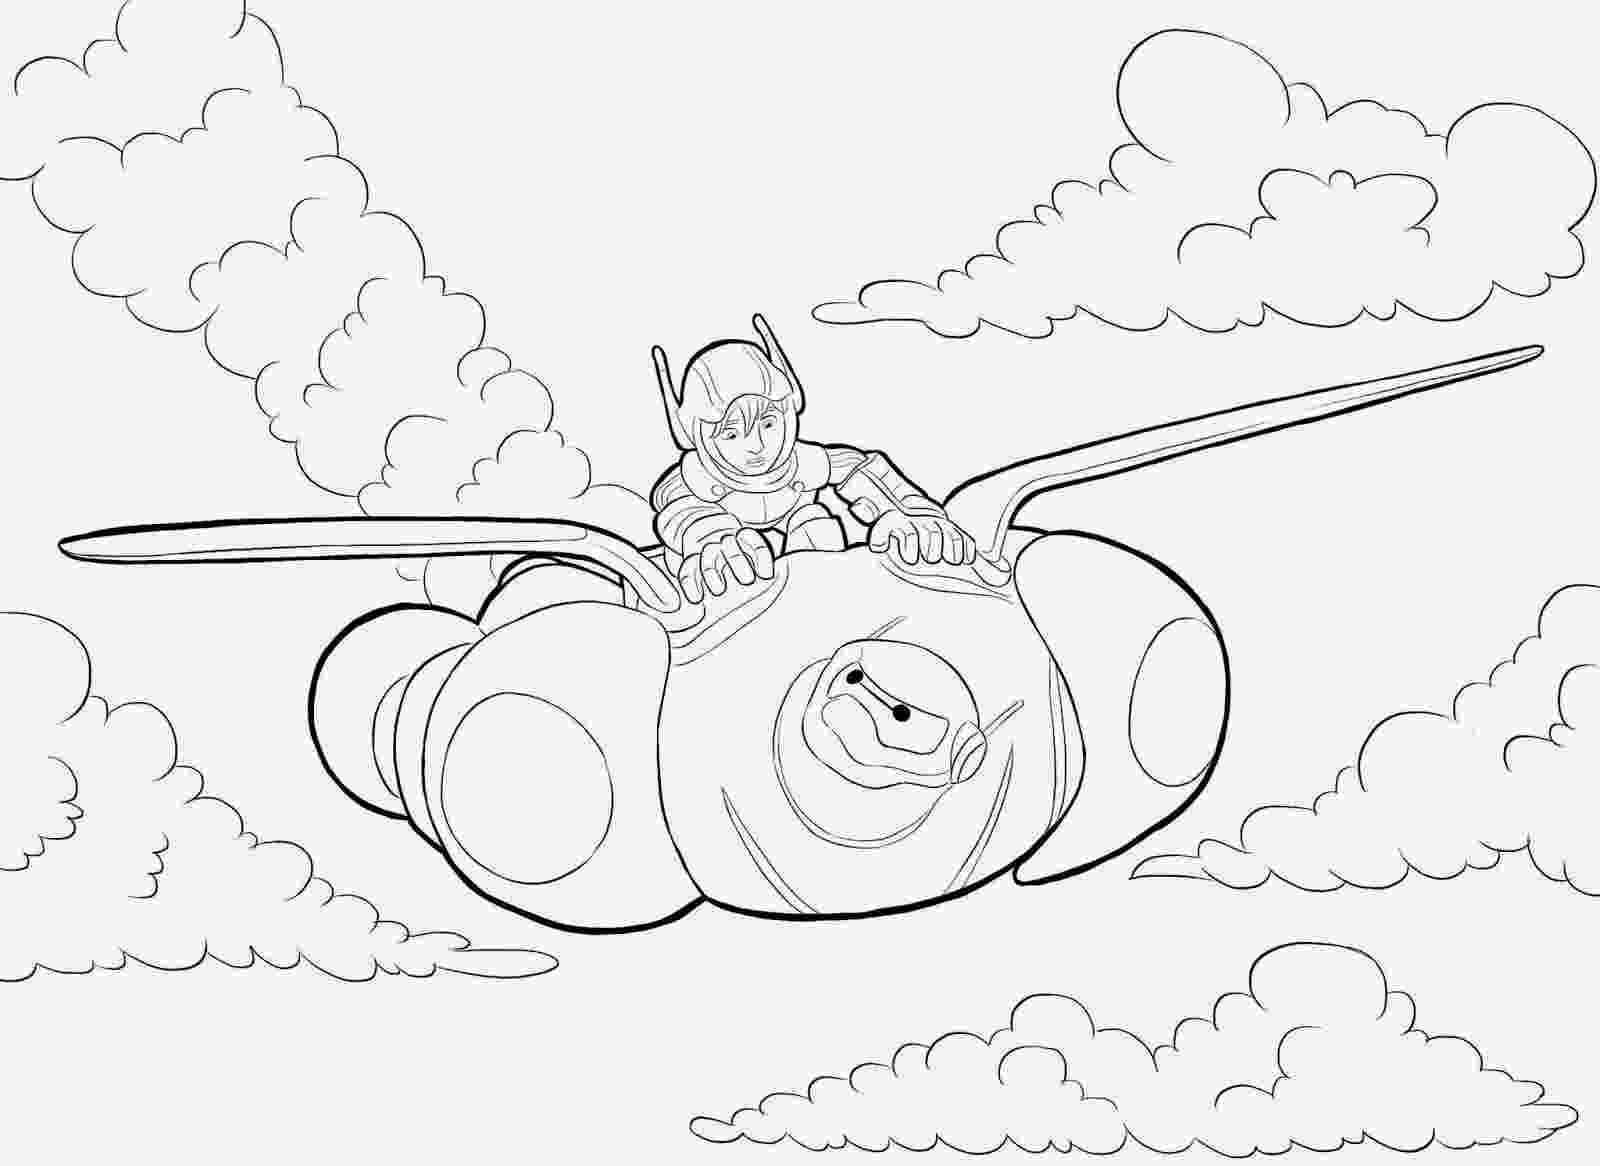 big hero 6 coloring book big hero 6 coloring pages getcoloringpagescom hero 6 big coloring book